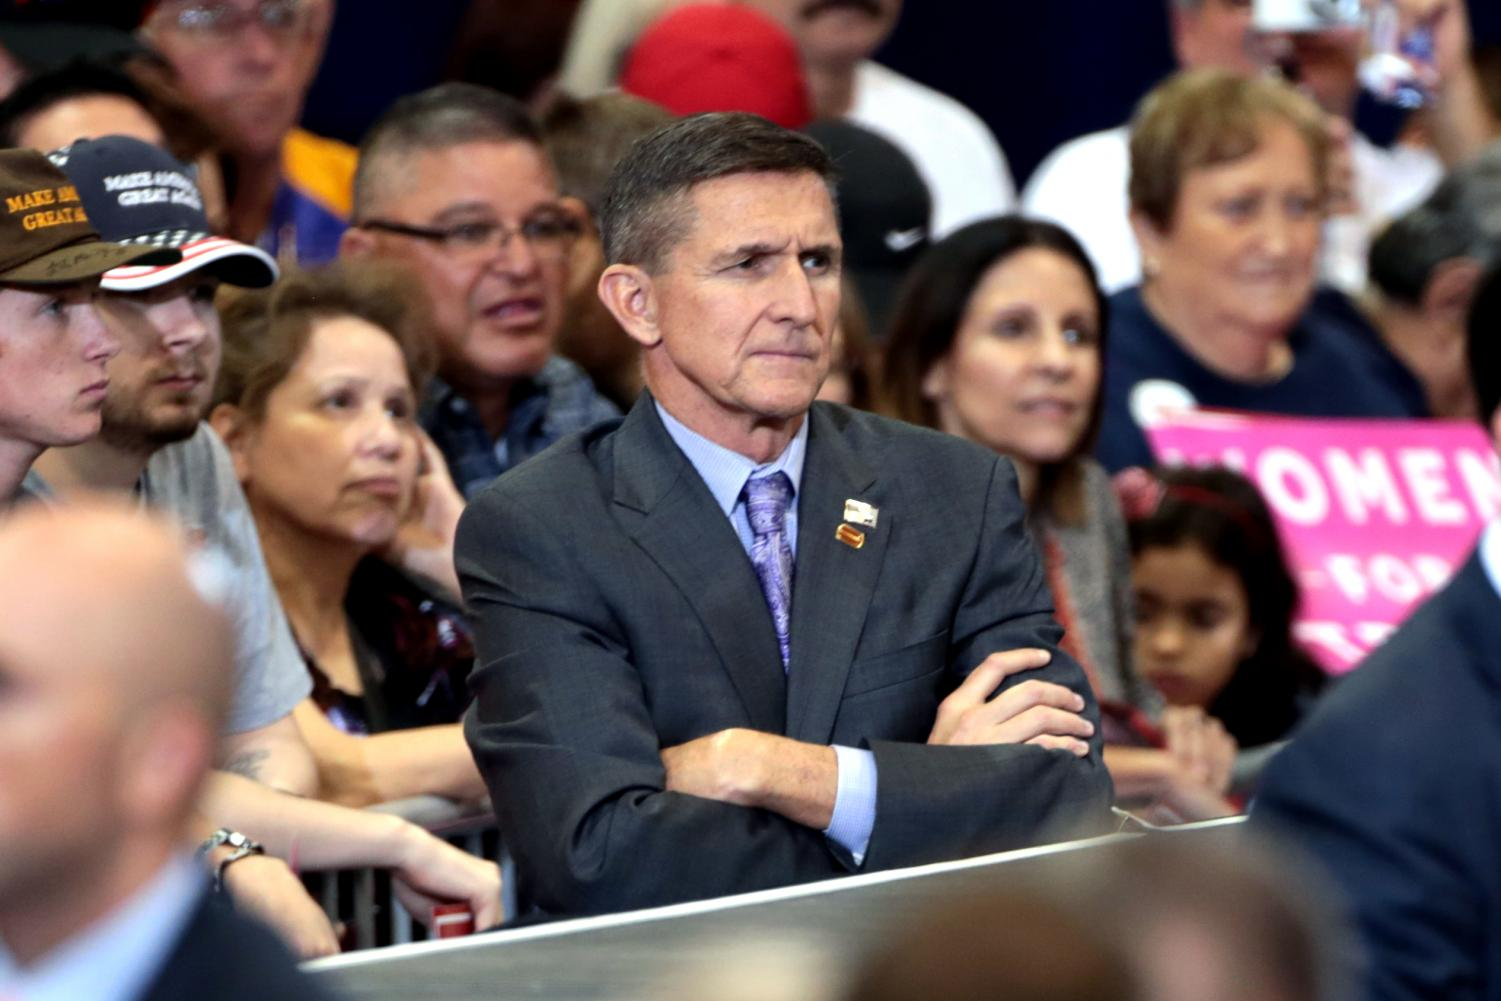 Former General and National Security Advisor Michael Flynn looks on at a Donald Trump campaign rally. (Gage Skidmore/ Flickr)